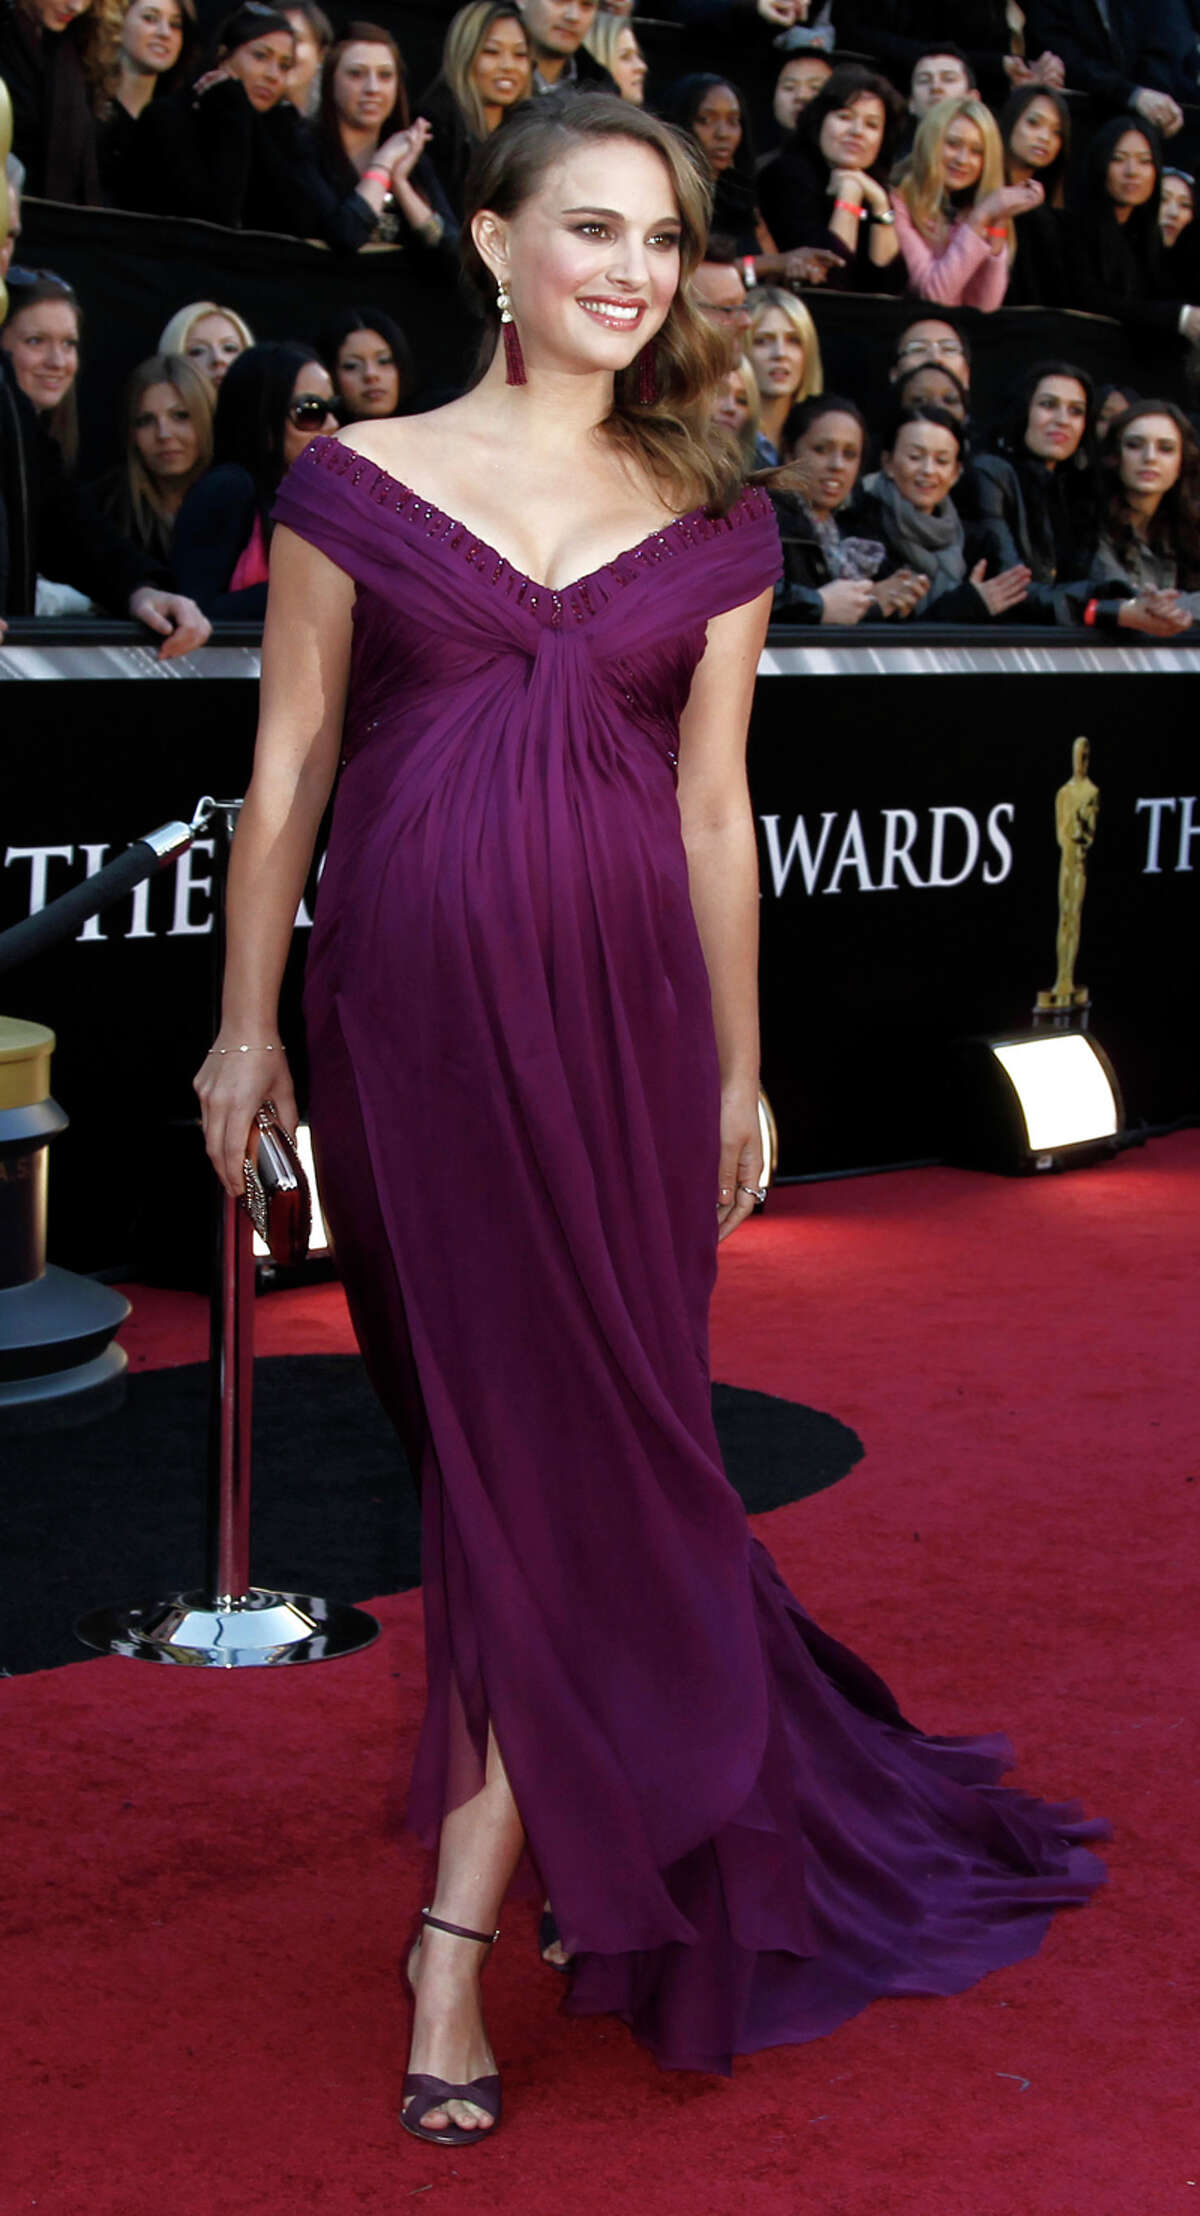 Natalie Portman is rated PG. Perhaps the only pregnant woman in human history who could pull off purple. Commentary by the Houston Chronicle's Kyrie O'Connor of the MeMo blog. Photo by the Associated Press.